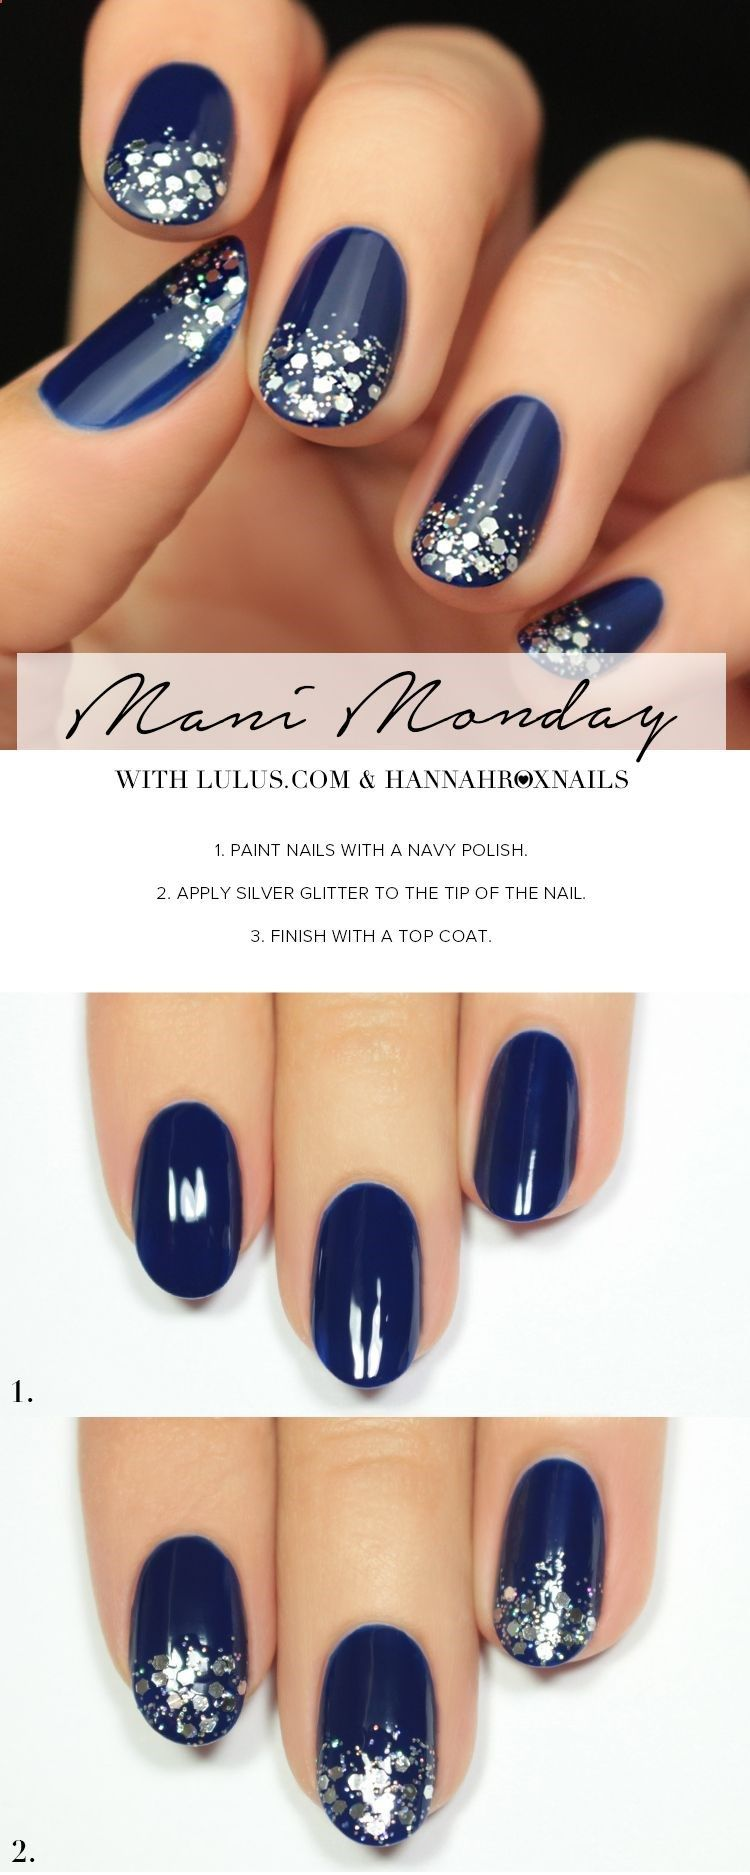 Mani Monday: Navy Blue and Silver Glitter Nail Tutorial at LuLus.com ...